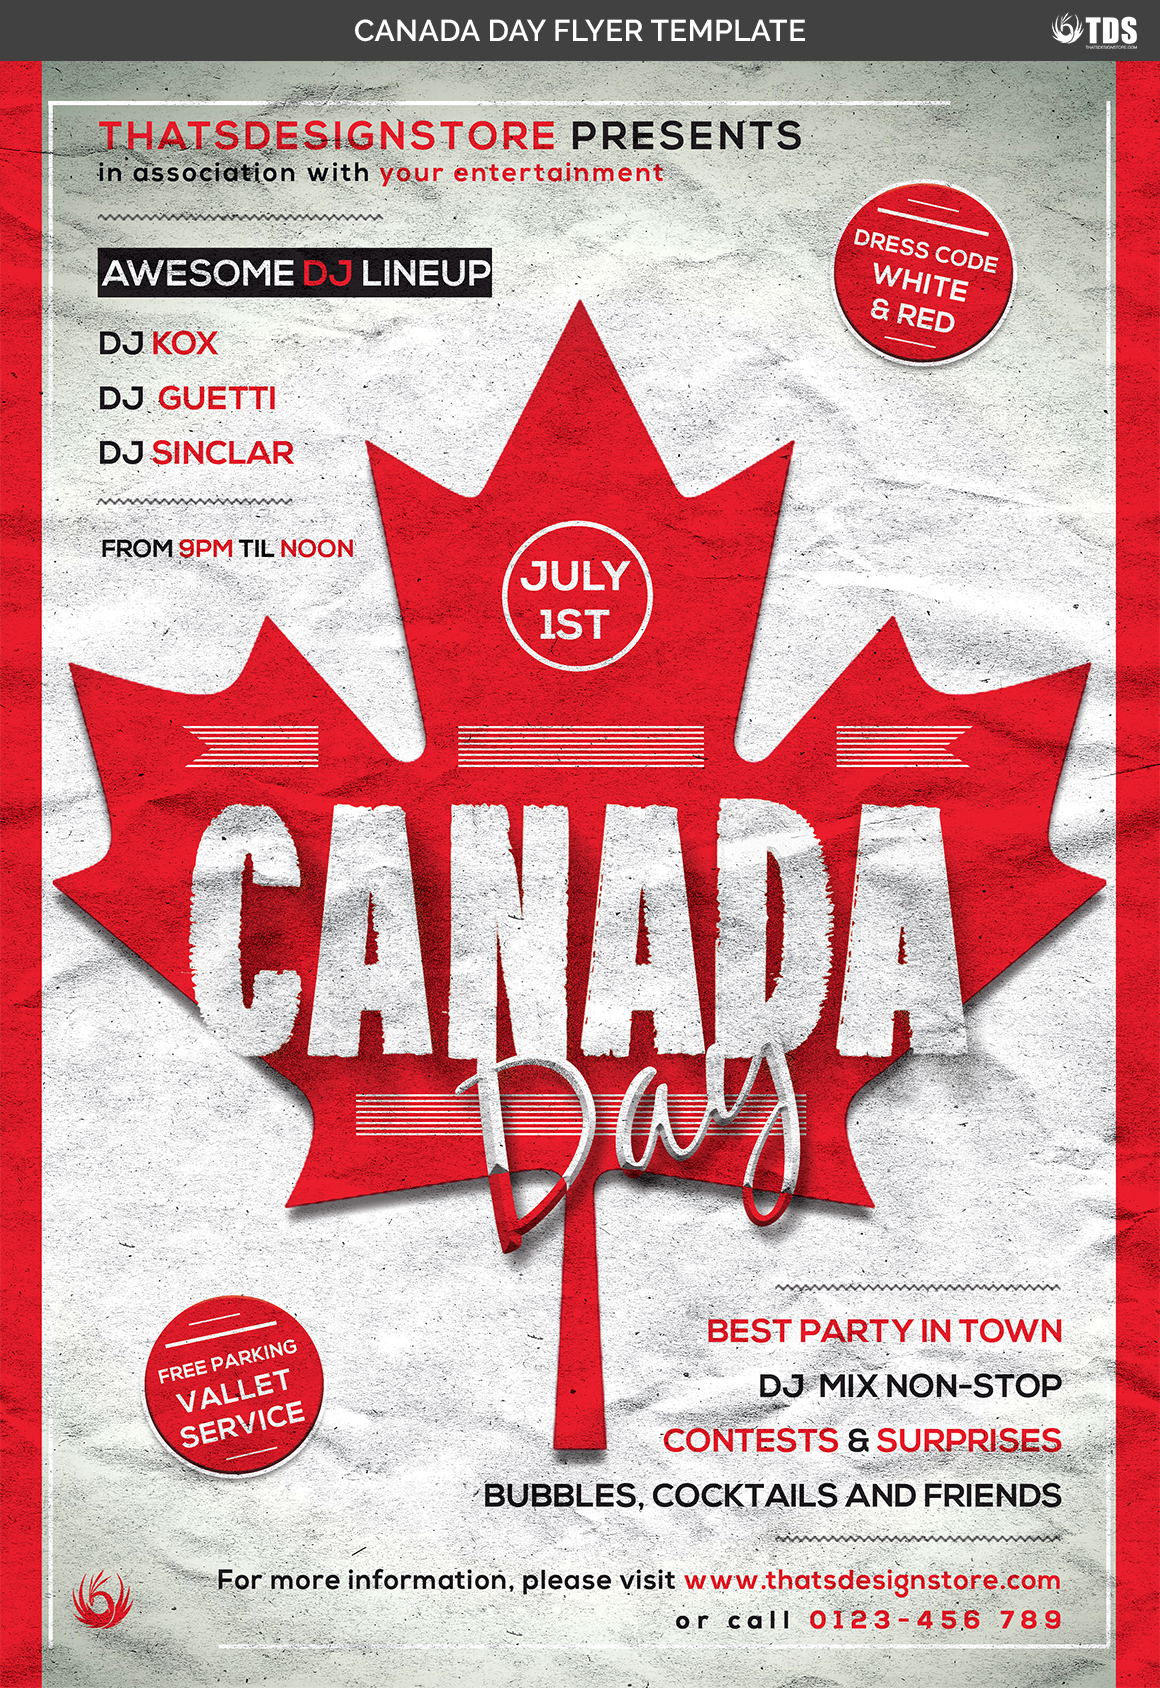 Canada Day Flyer Template example image 4